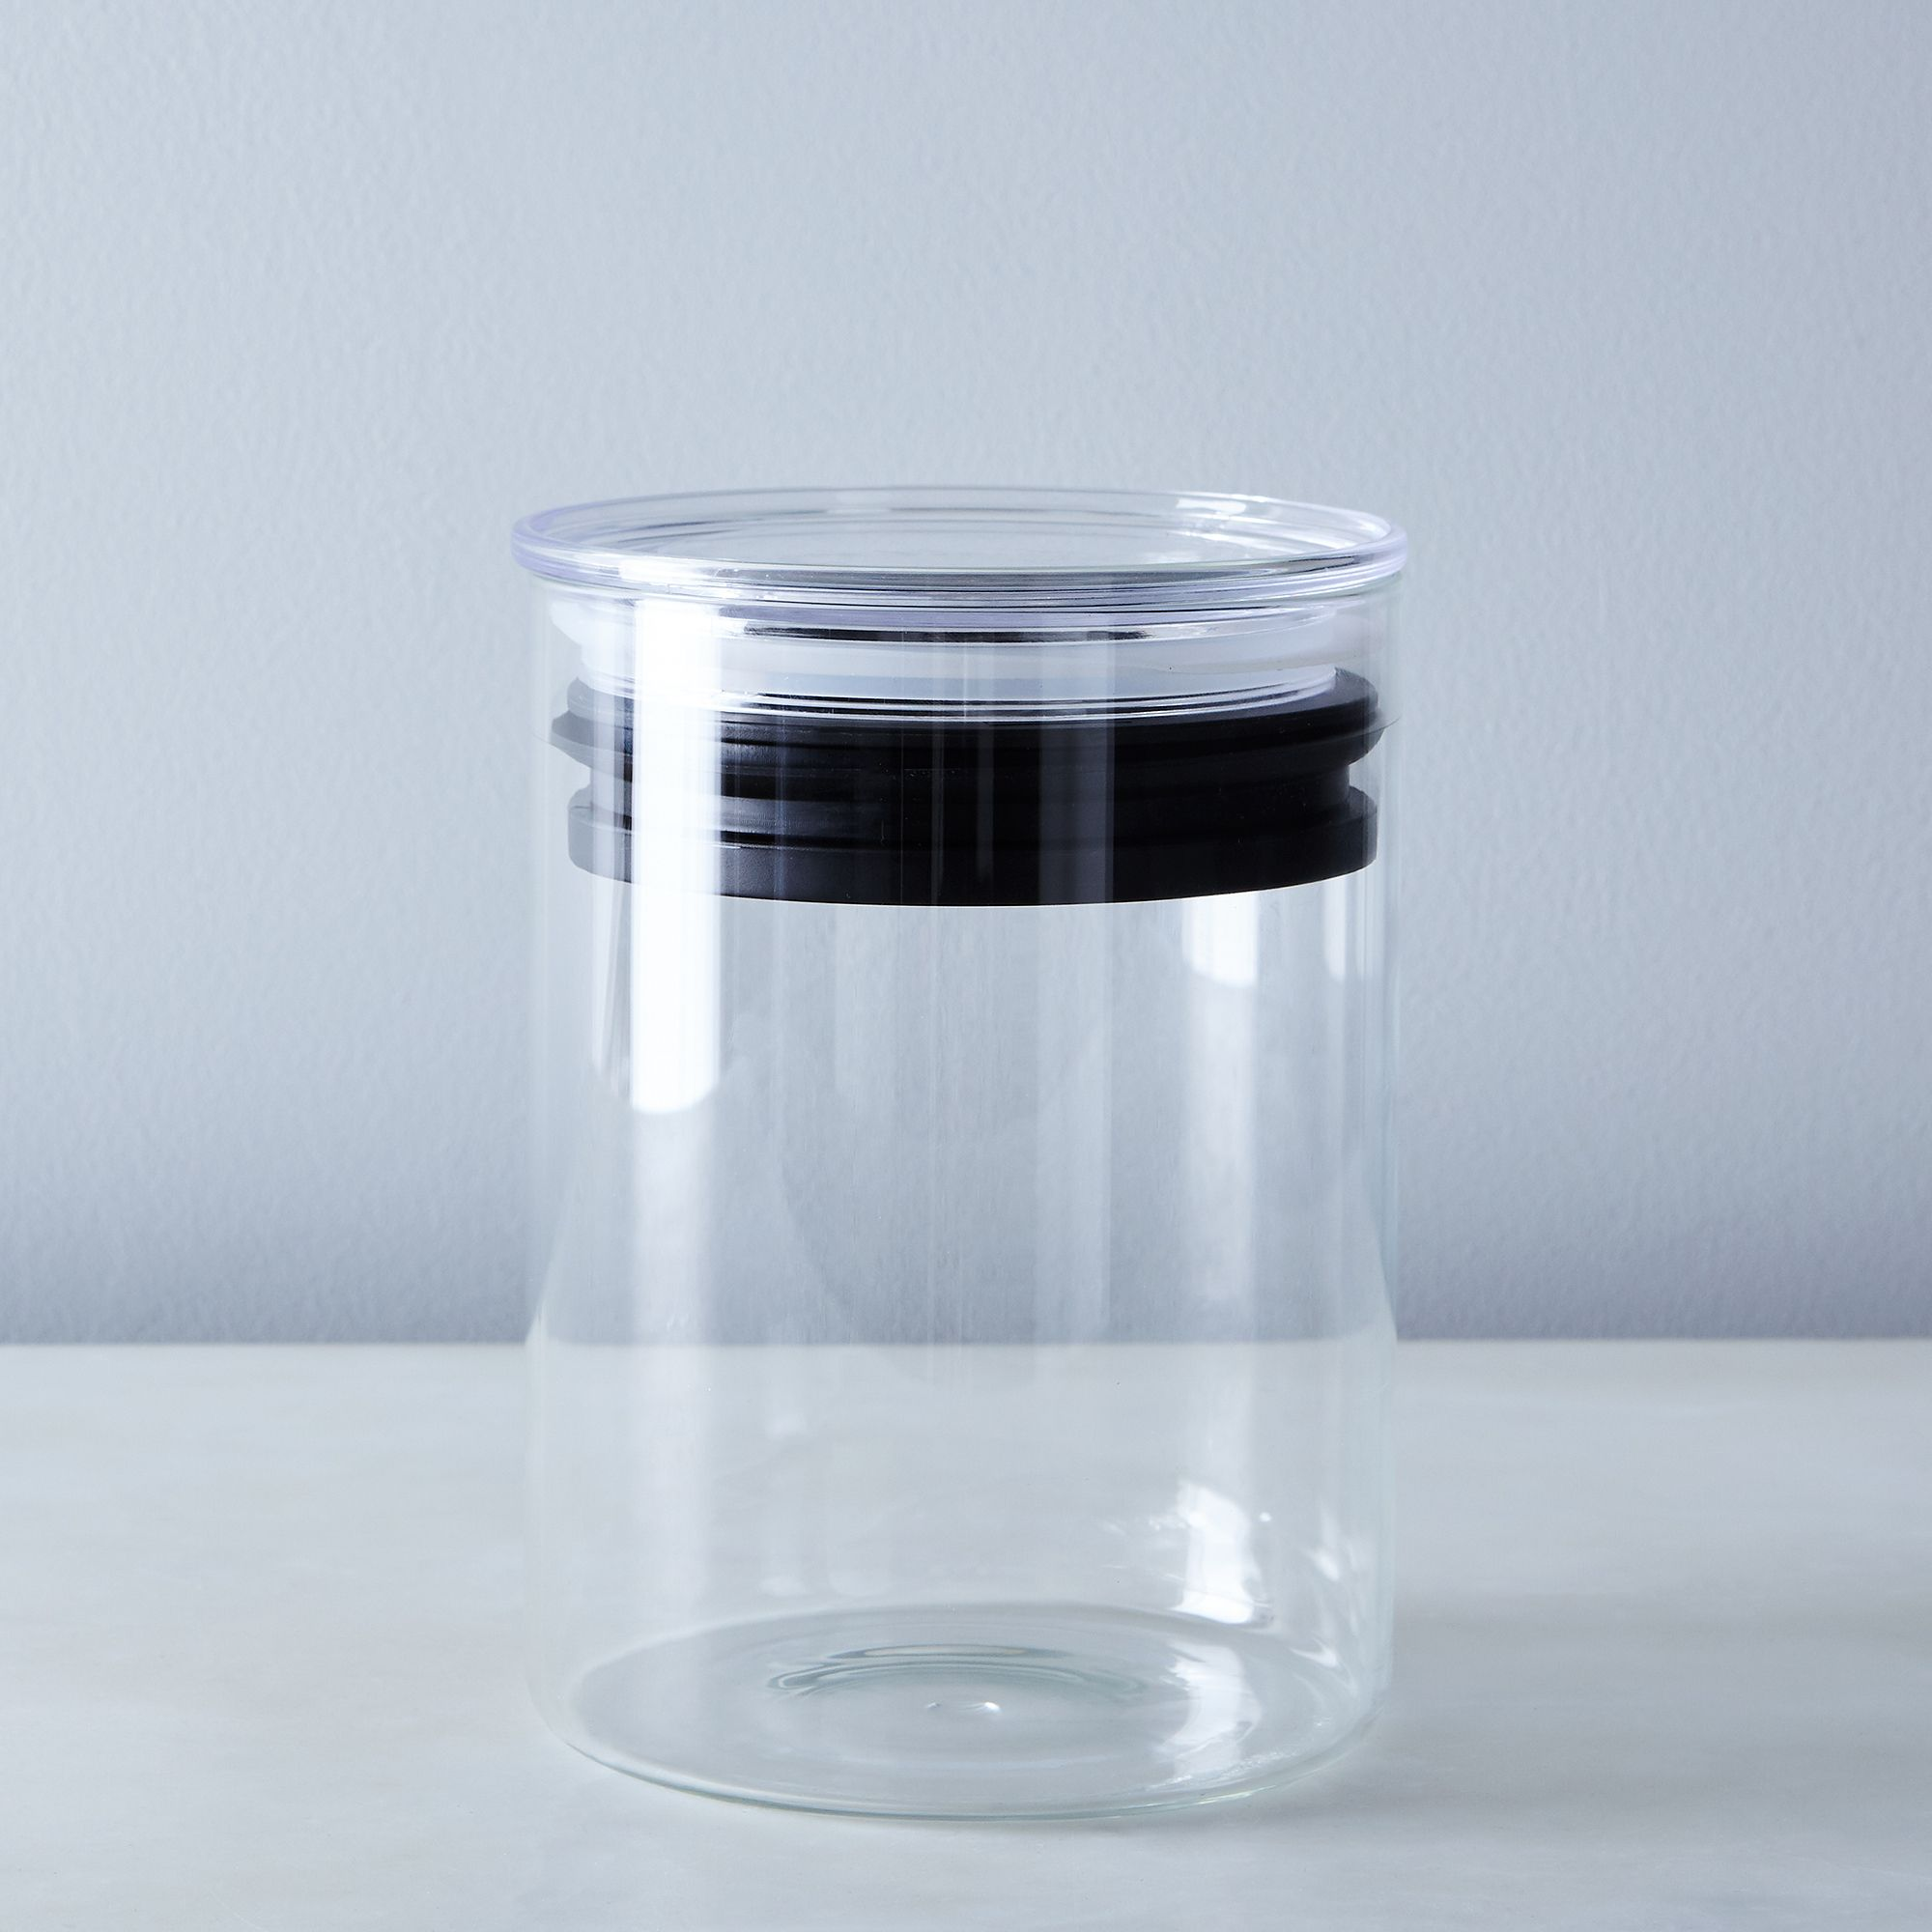 Airscape Glass Food Storage Containers on Food52